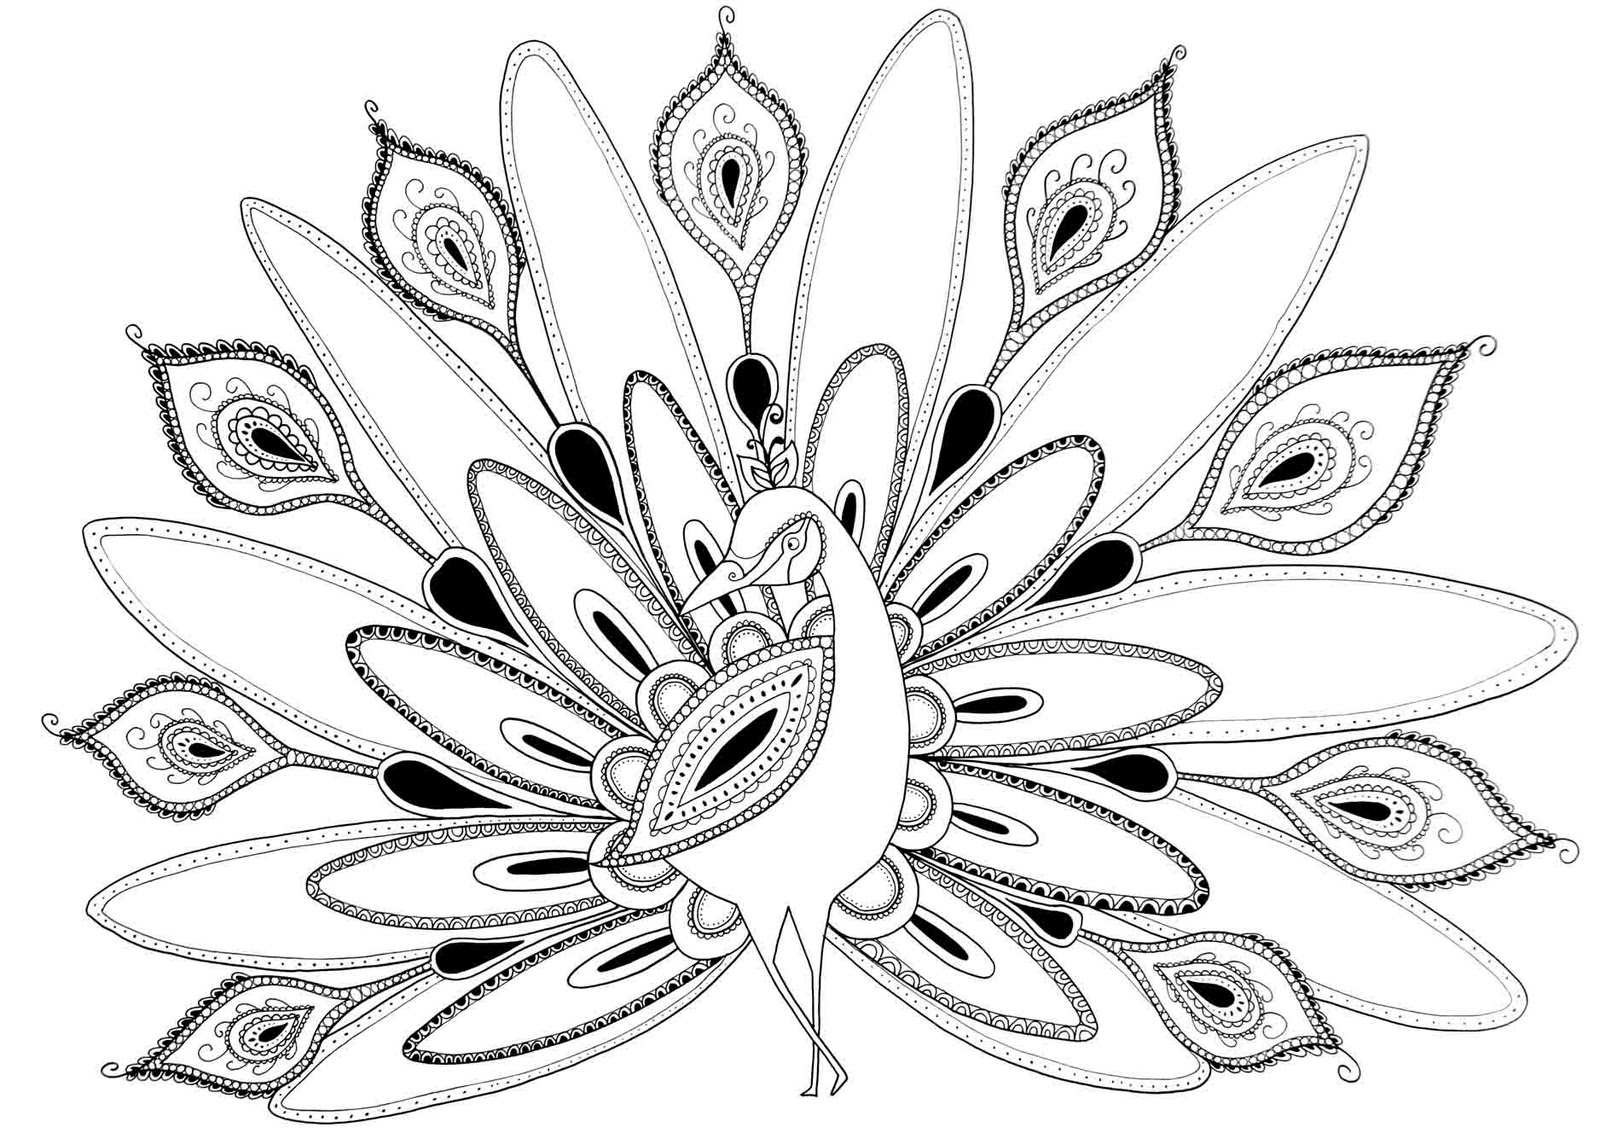 peacock coloring images peacock in flowers coloring page free printable coloring images coloring peacock